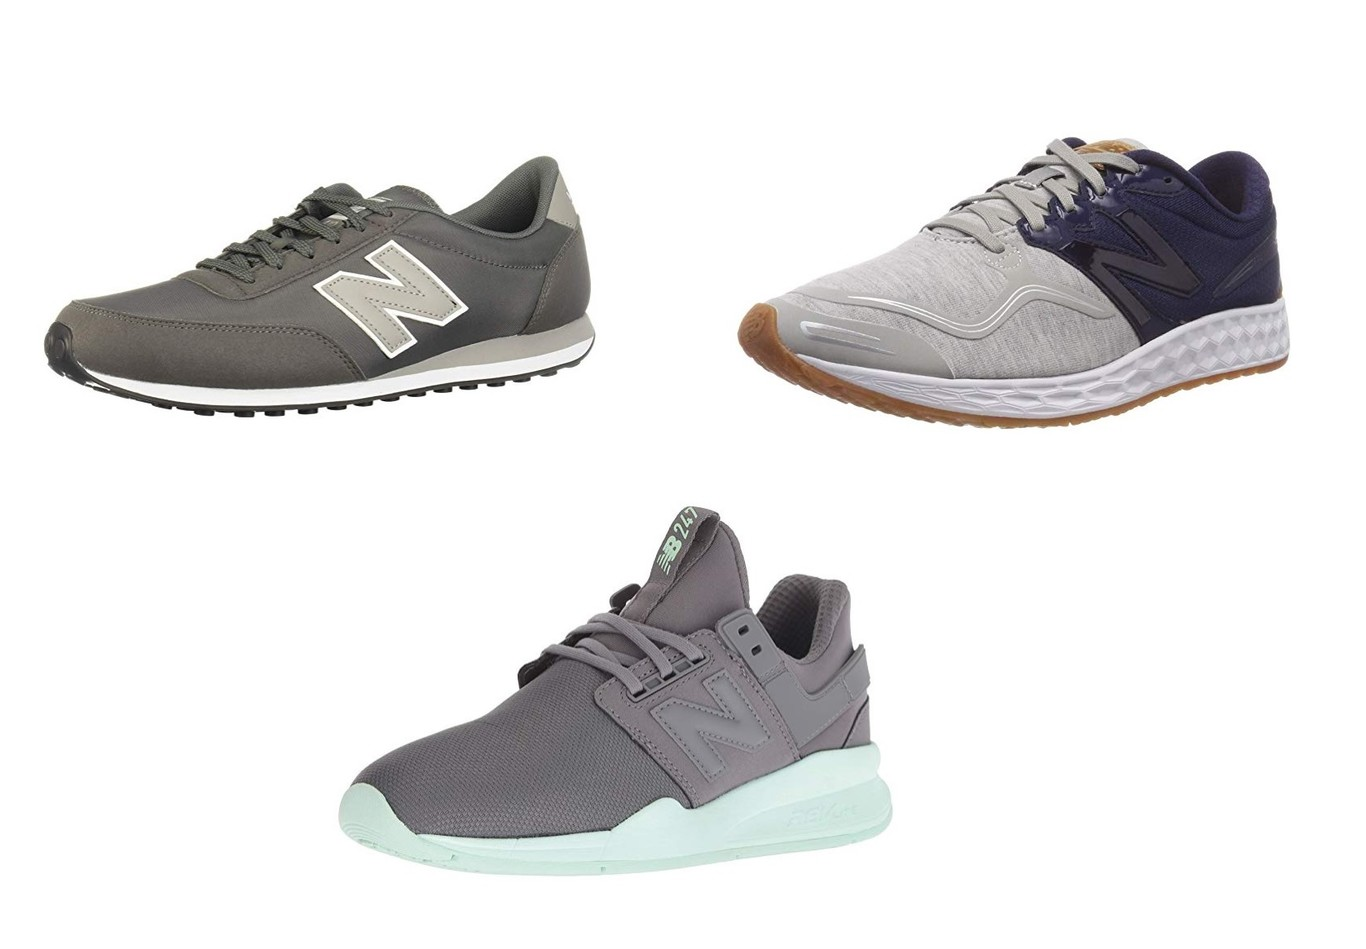 cheap for discount d5bc3 6dd96 Chollos en tallas sueltas de zapatillas New Balance en Amazon